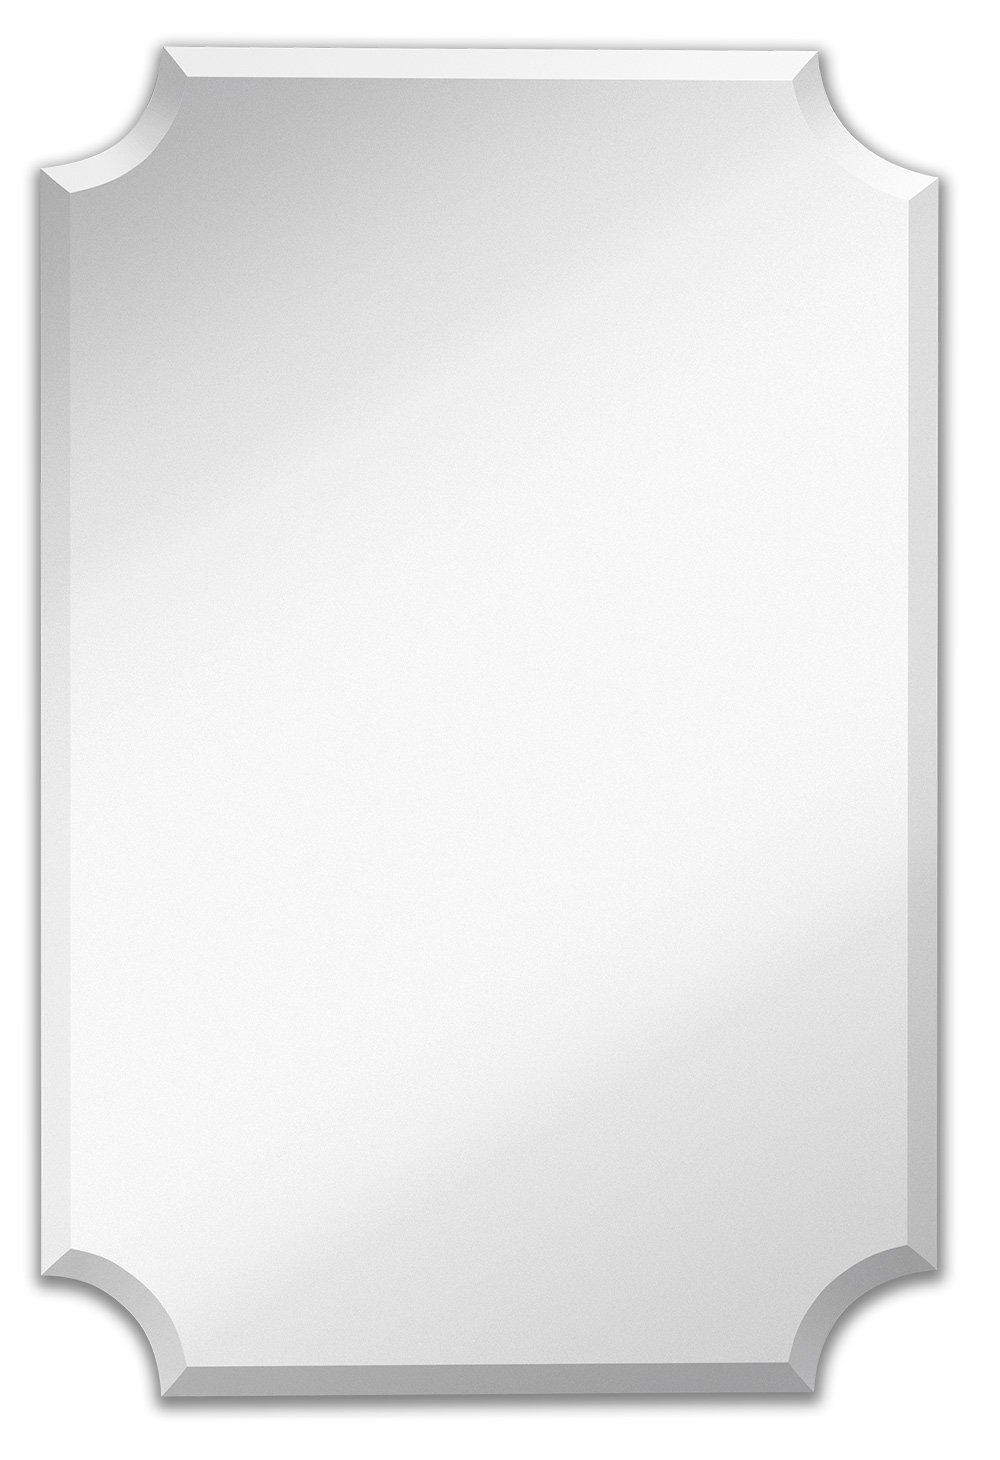 Large Beveled Scalloped Edge Rectangular Wall Mirror | 1 inch Bevel Curved Corners Rectangle Mirrored Glass Panel for Vanity, Bedroom, or Bathroom Hangs Horizontal & Vertical Frameless (24'' x 36'')